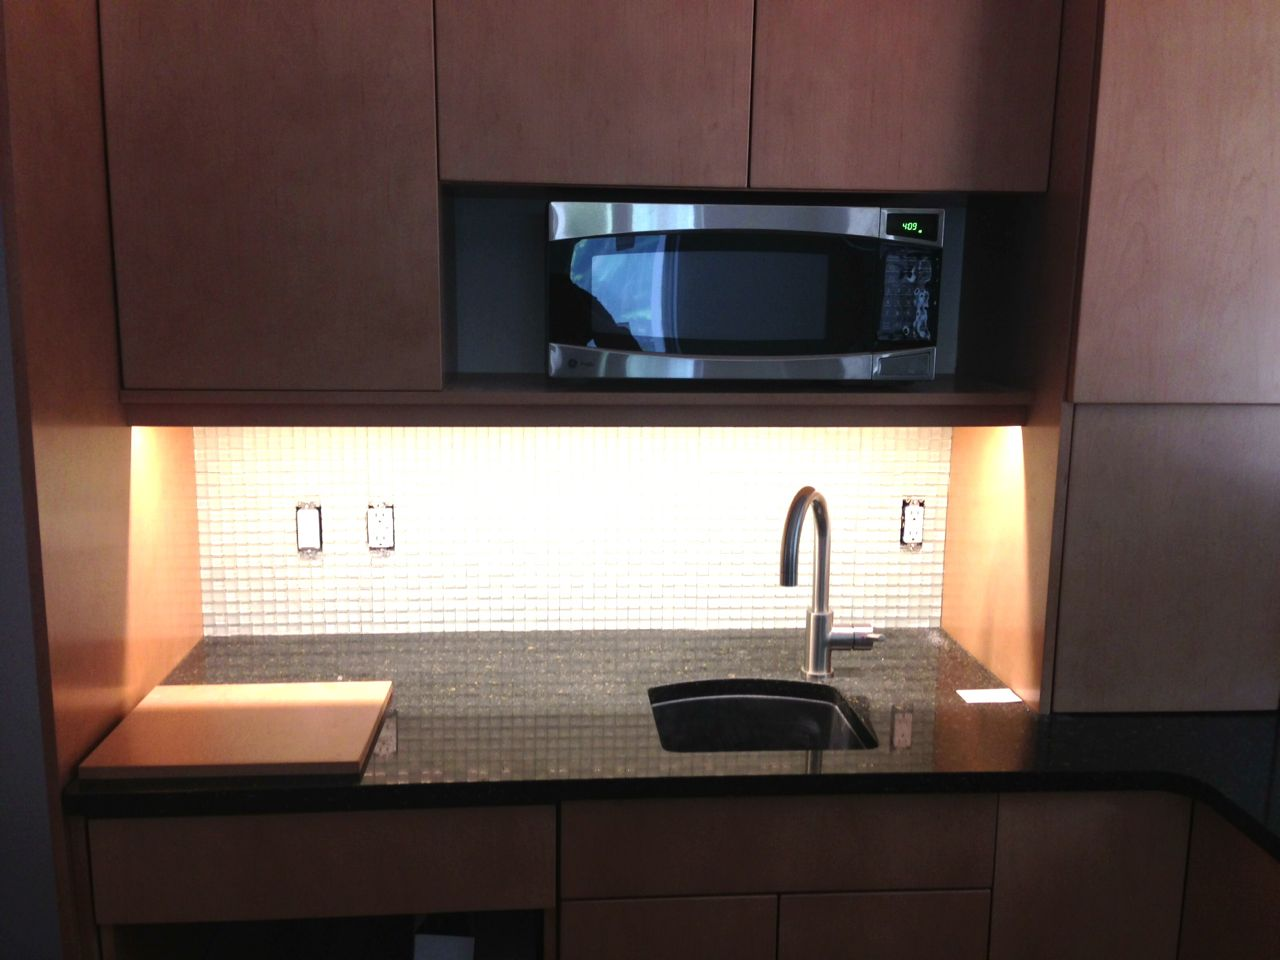 Space Saver Microwave For Compact And Functional Kitchen